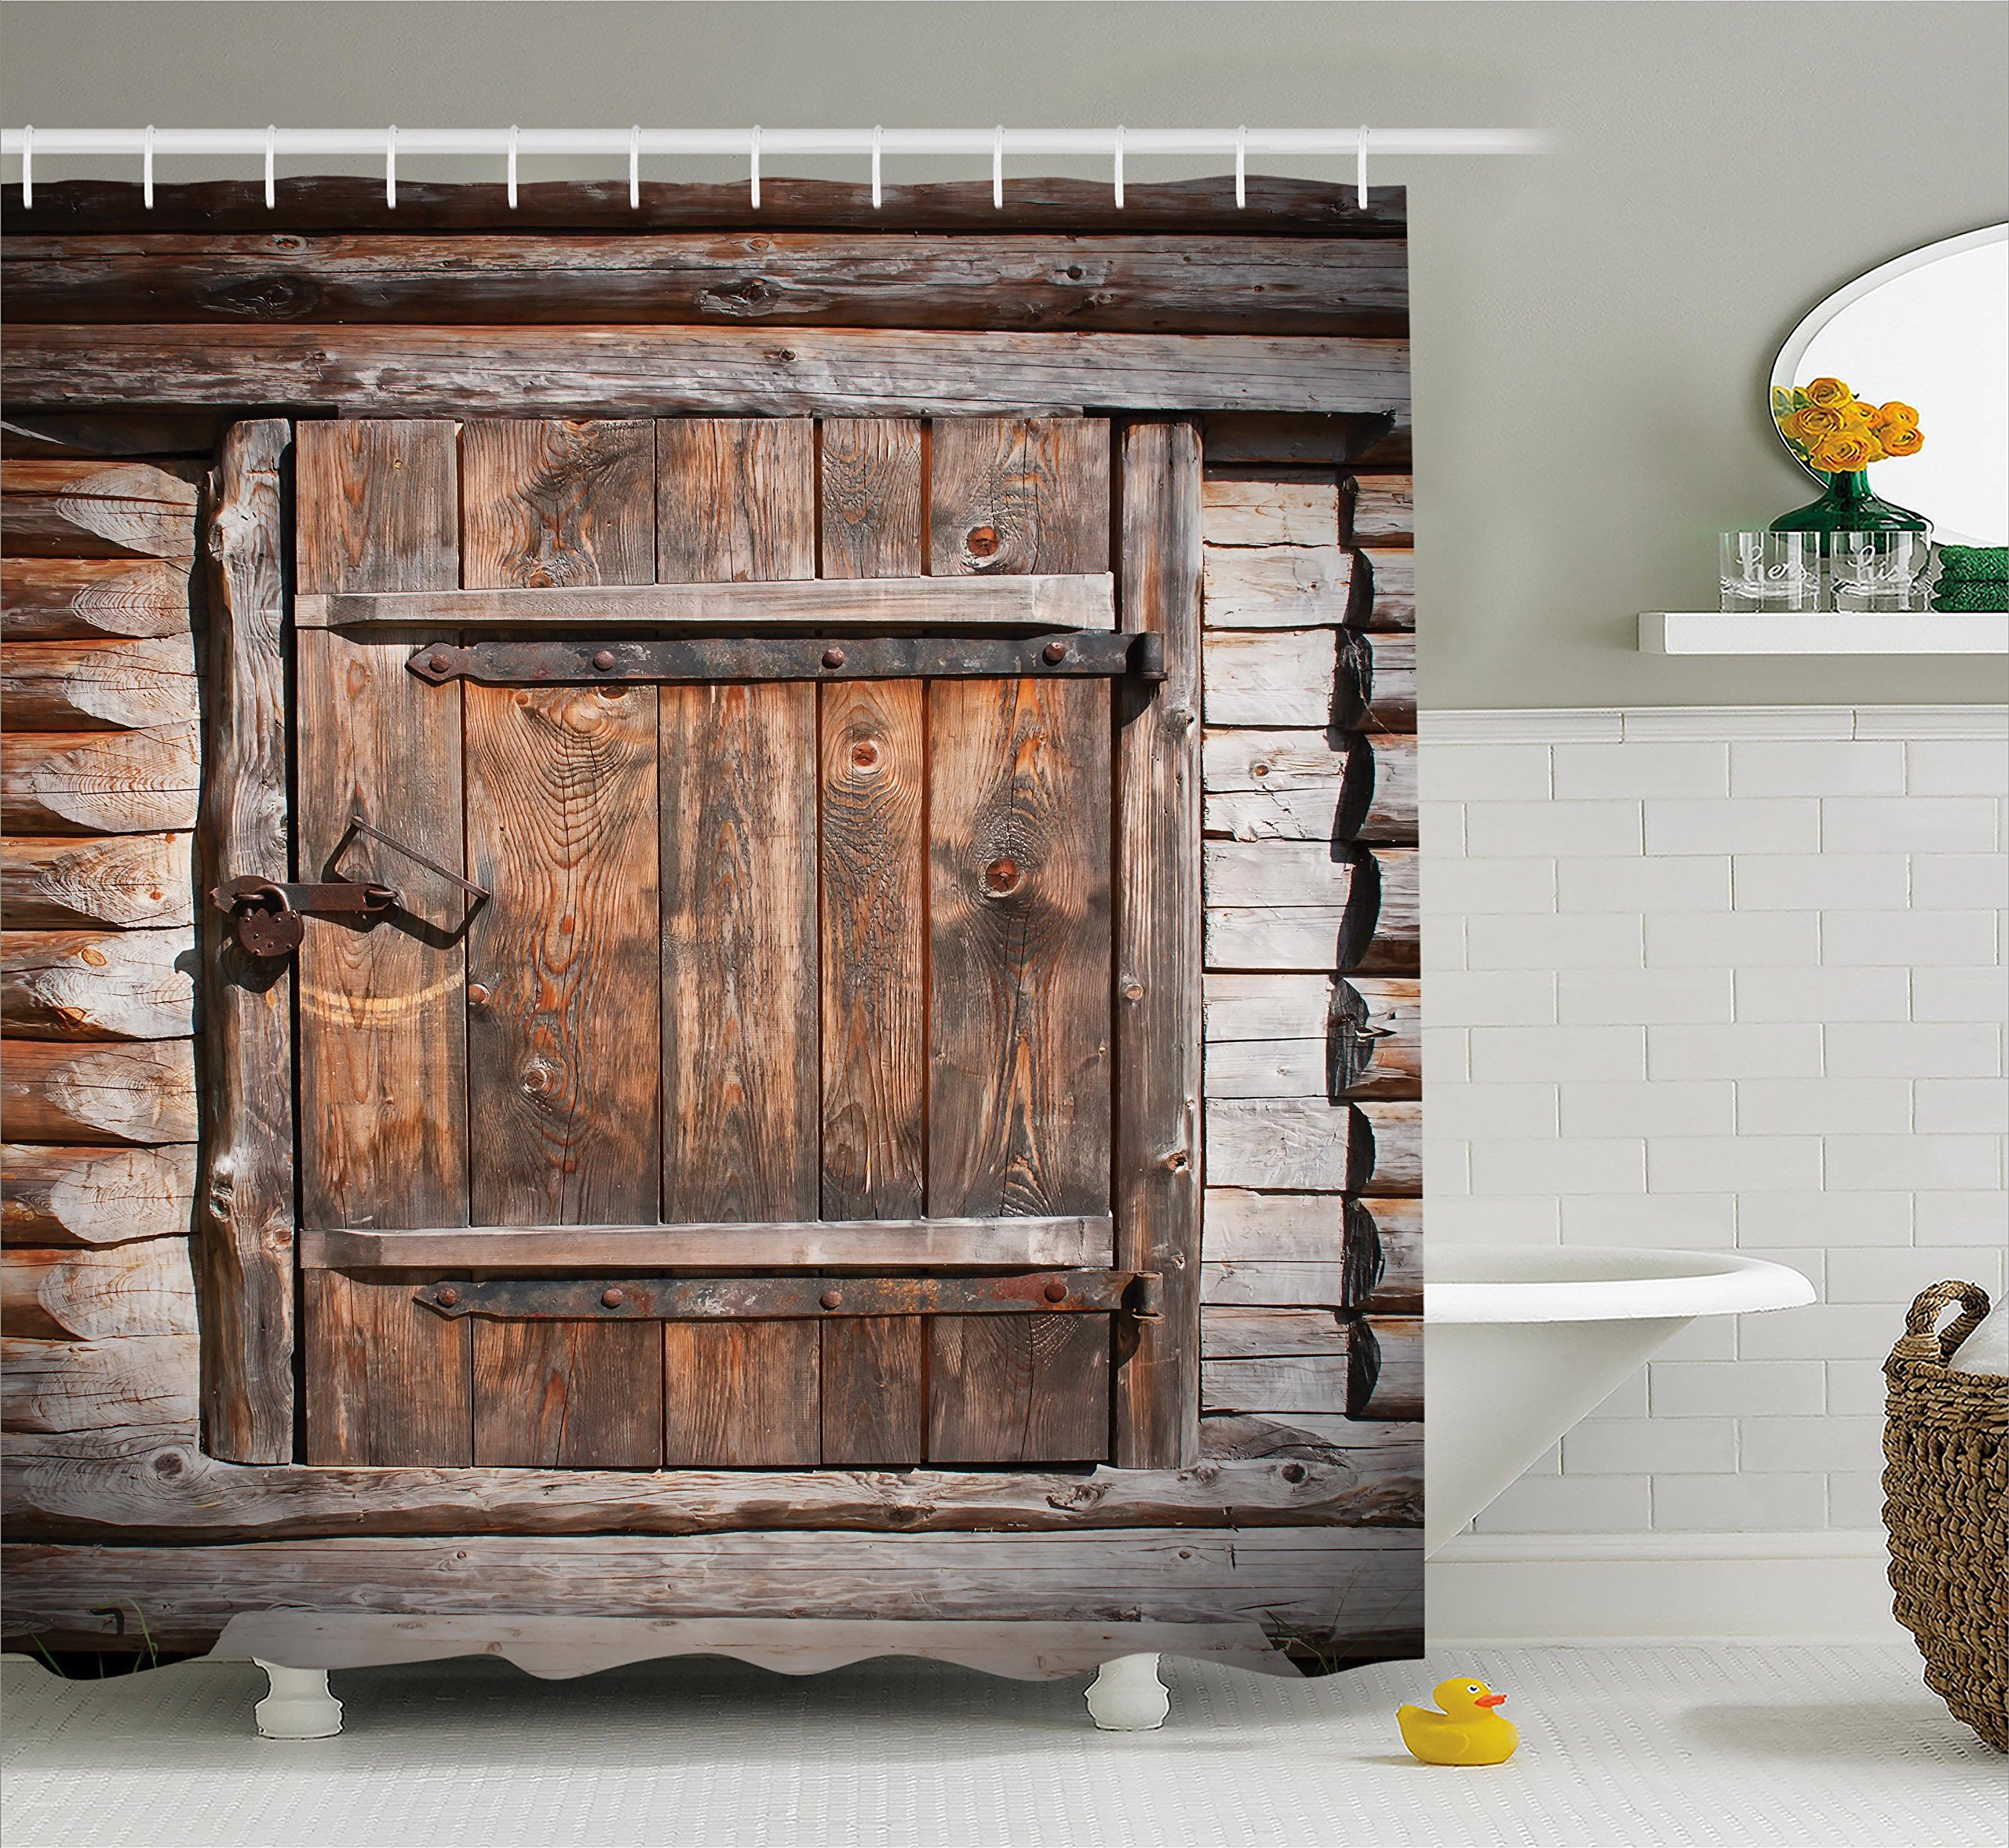 Ambesonne Vintage Shower Curtain, Rustic Wooden Door of Old Barn in Farmhouse Countryside Village Aged Rural Life Image, Fabric Bathroom Decor Set with Hooks, 84 Inches Extra Long, Brown